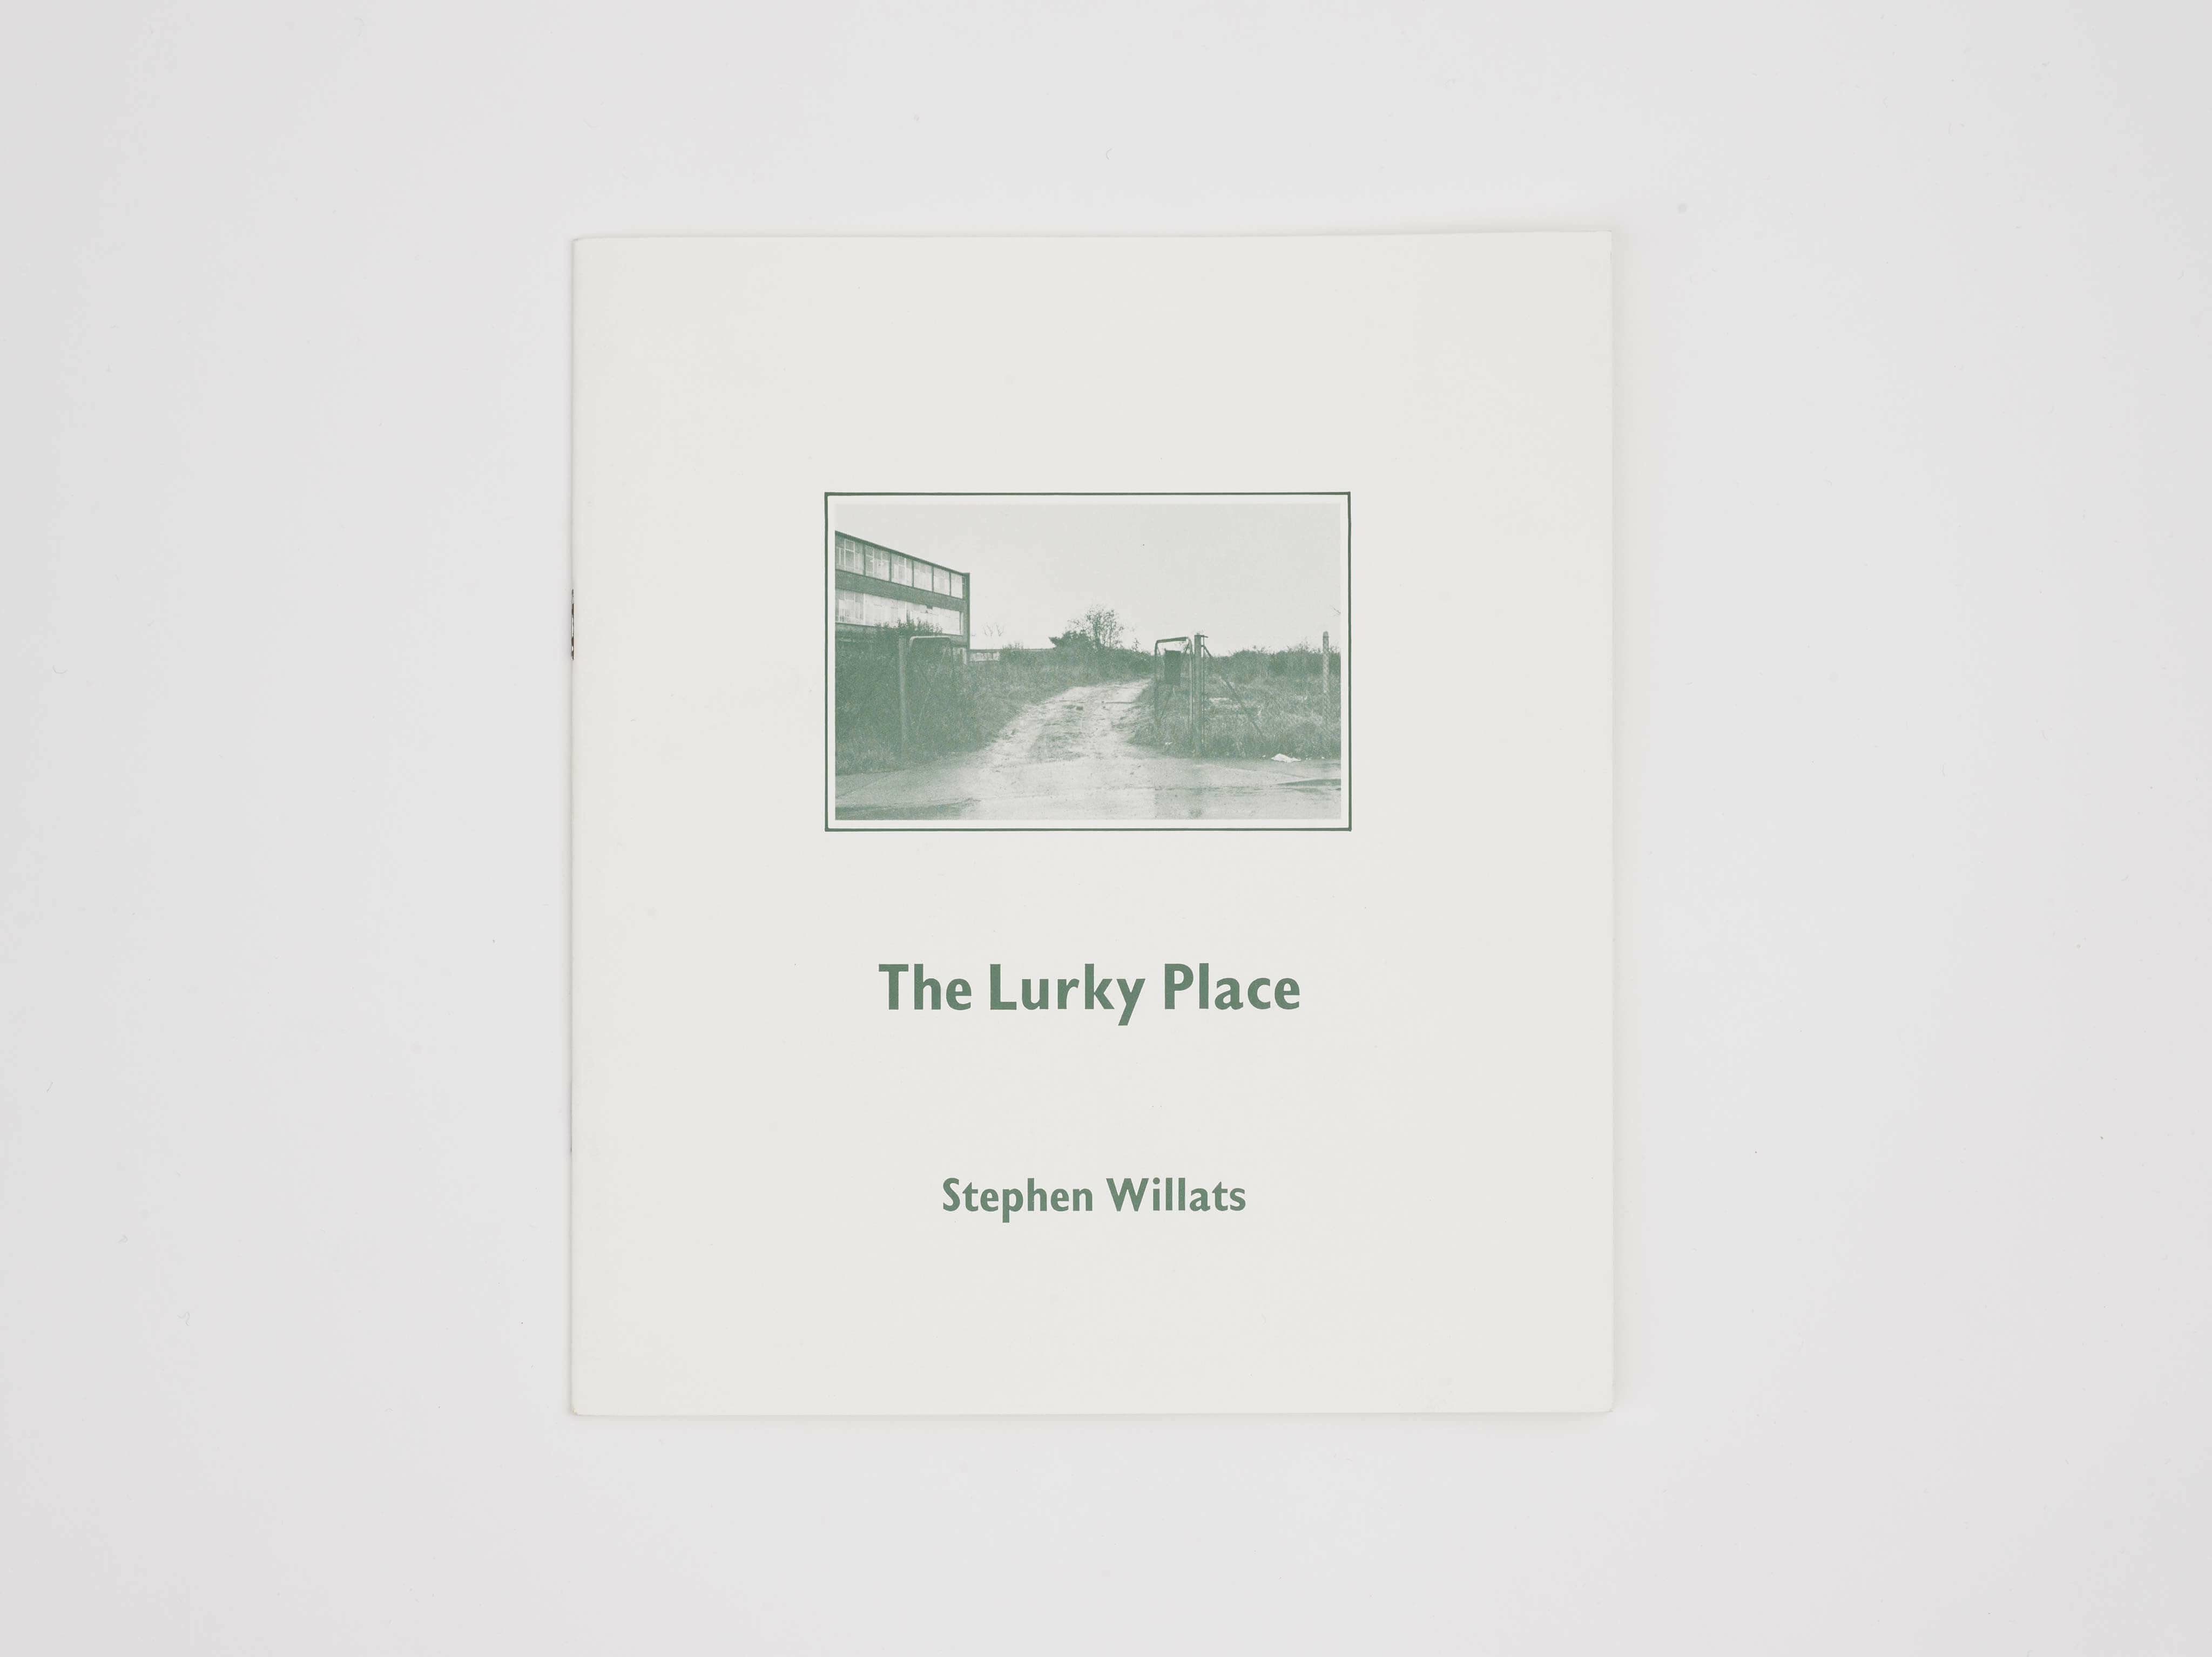 Stephen Willats: The Lurky Place